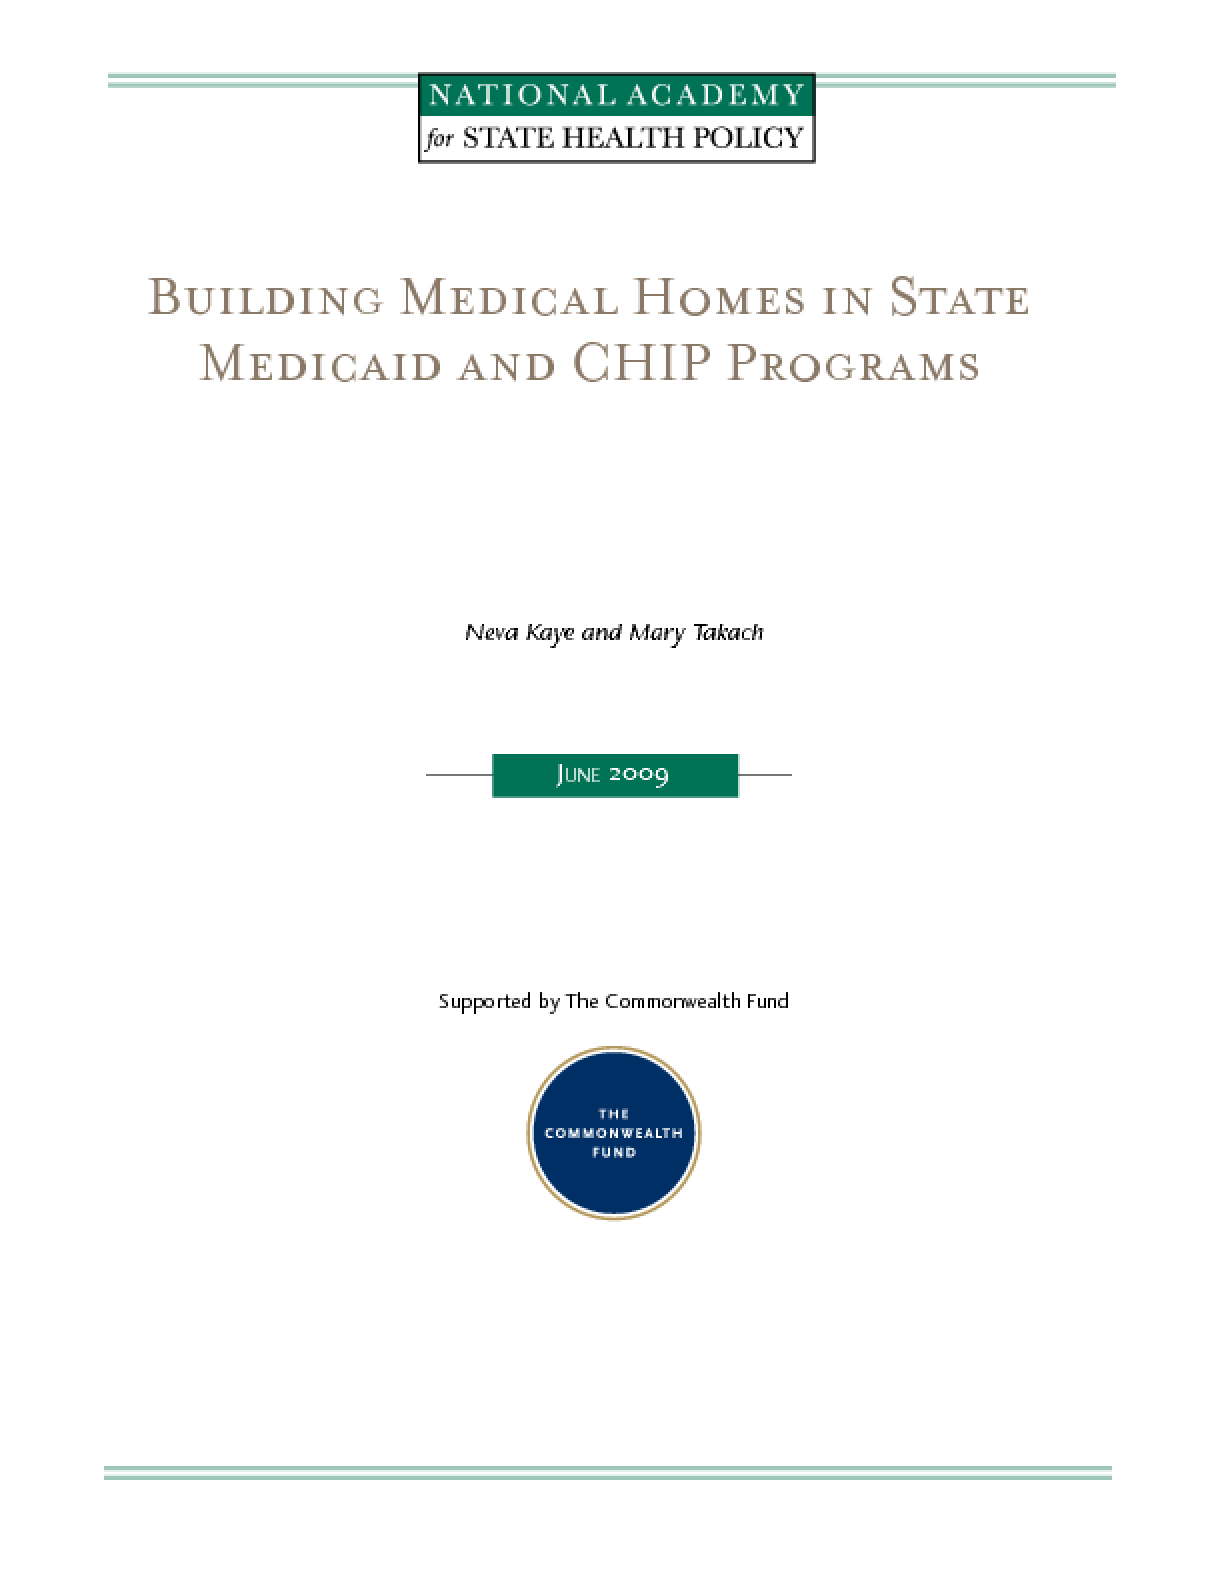 Building Medical Homes in State Medicaid and CHIP Programs